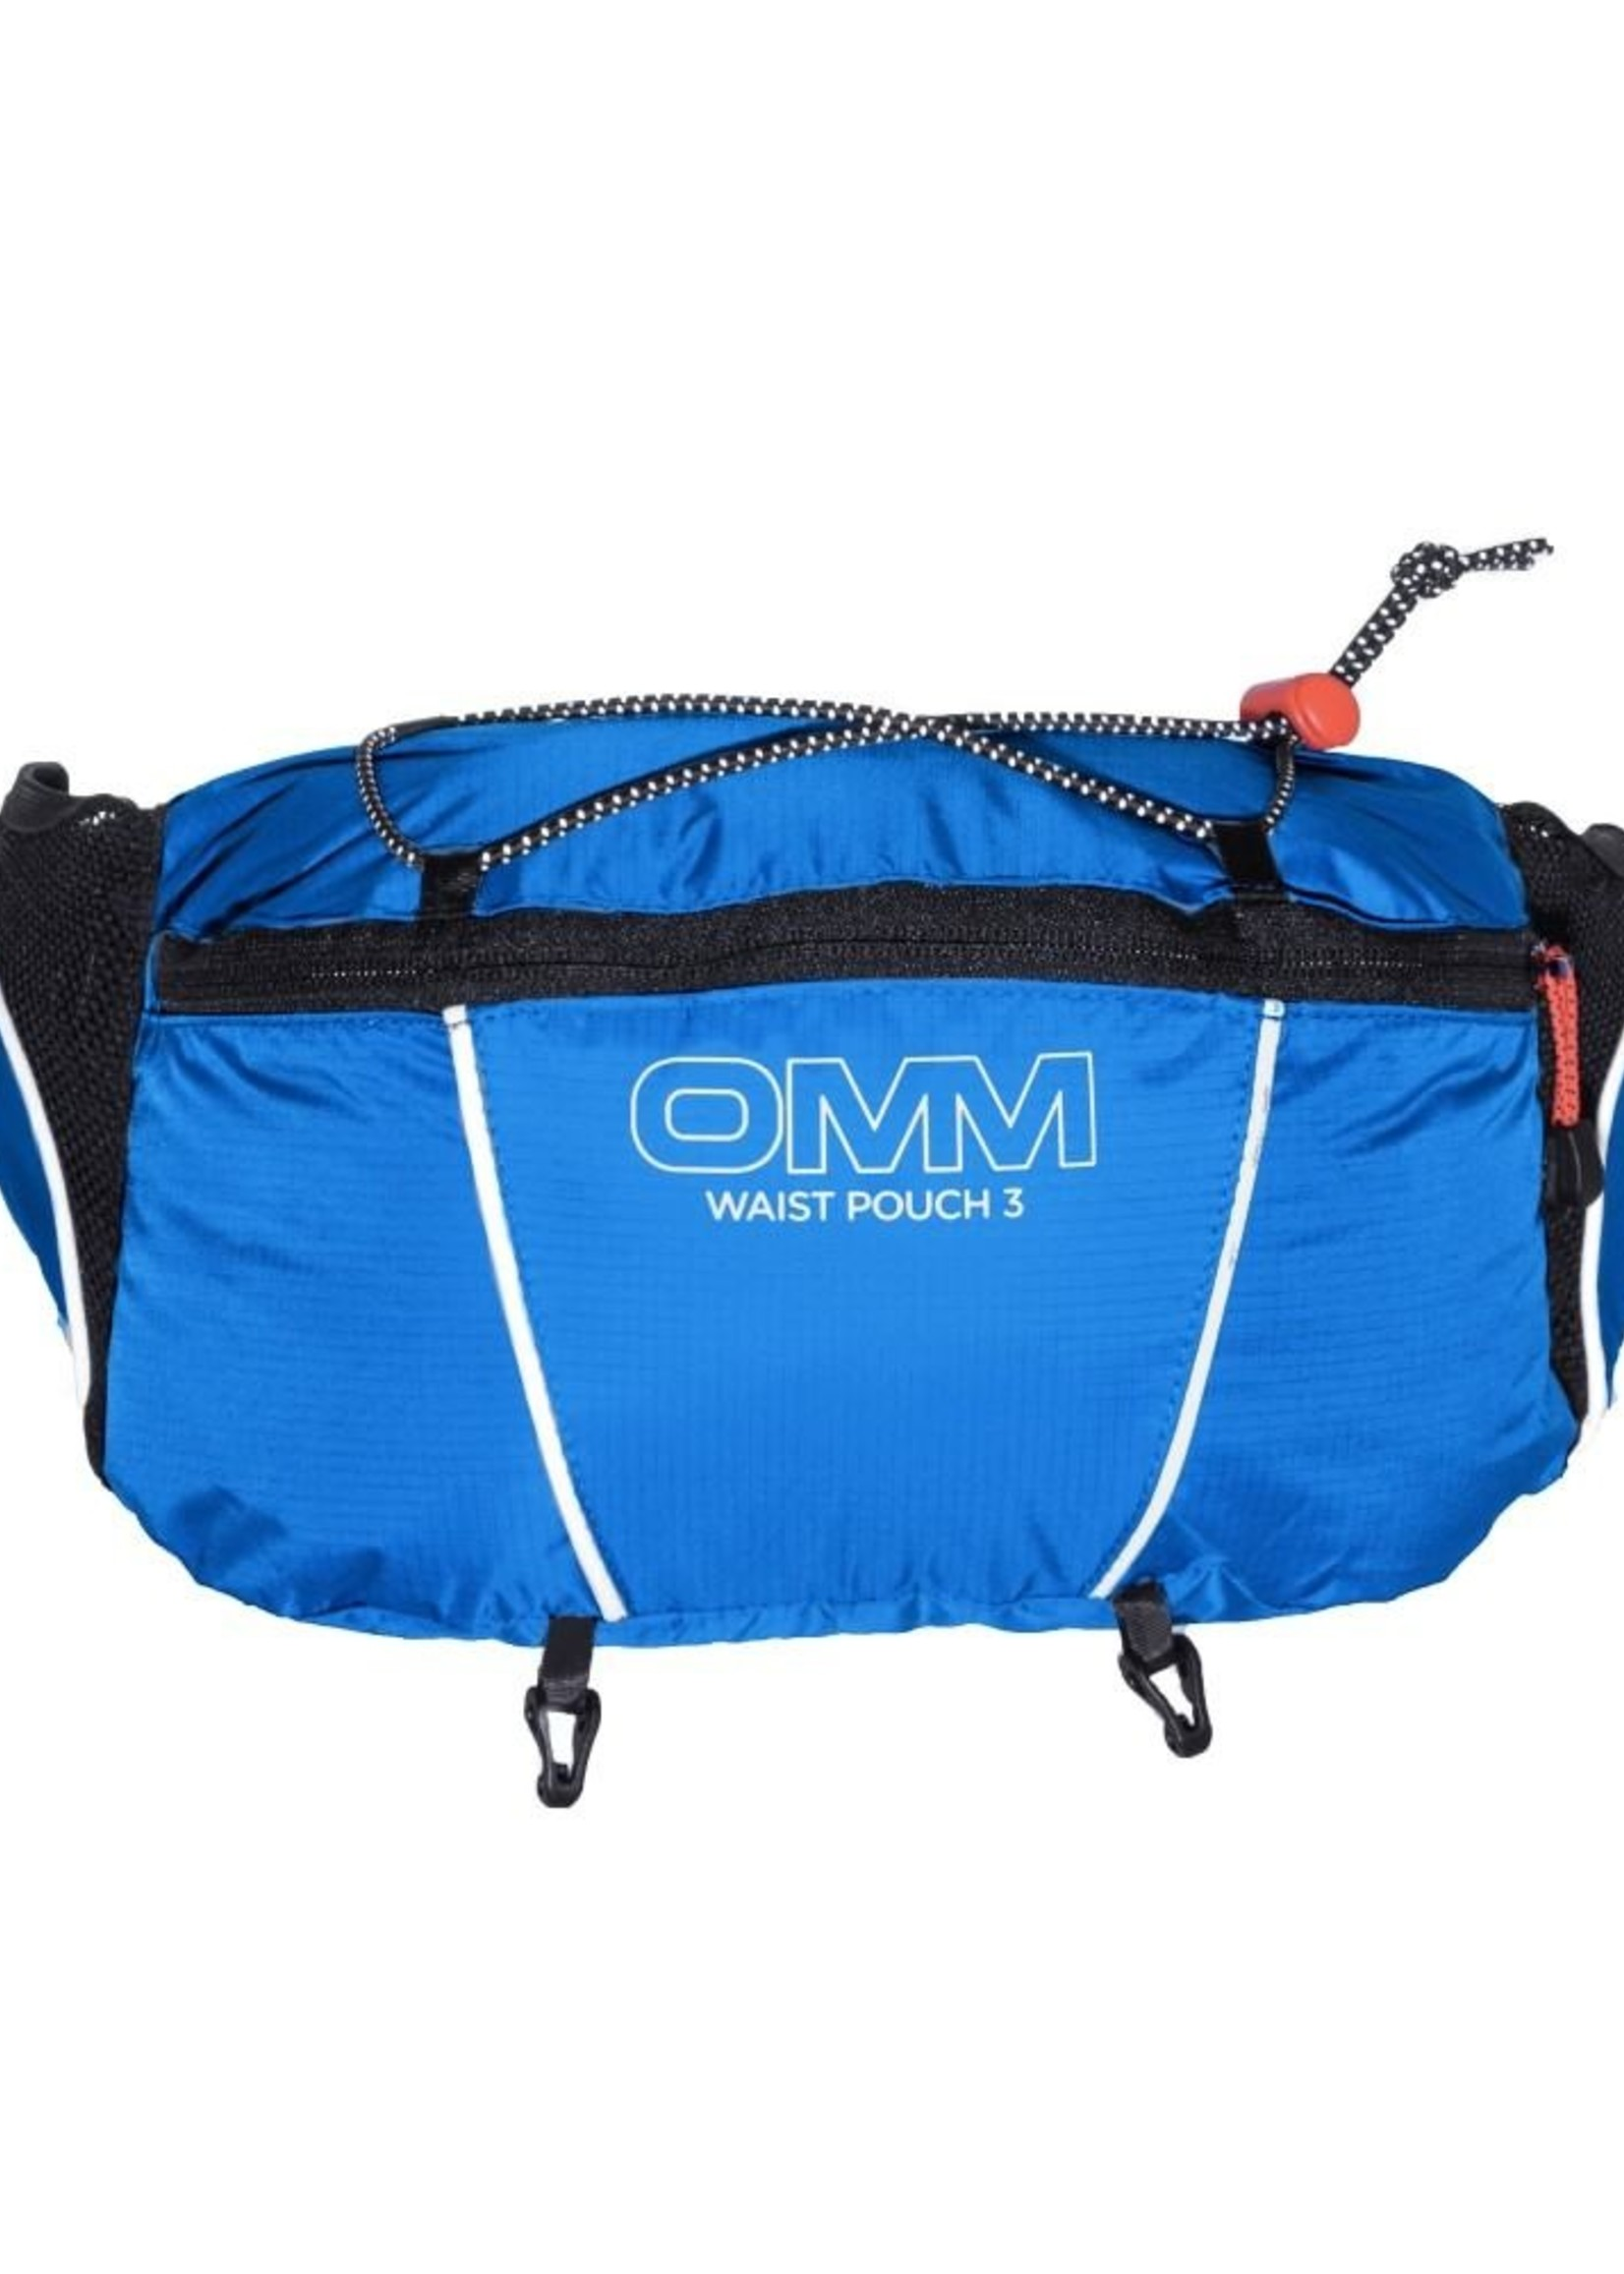 OMM OMM Waist Pouch 3L